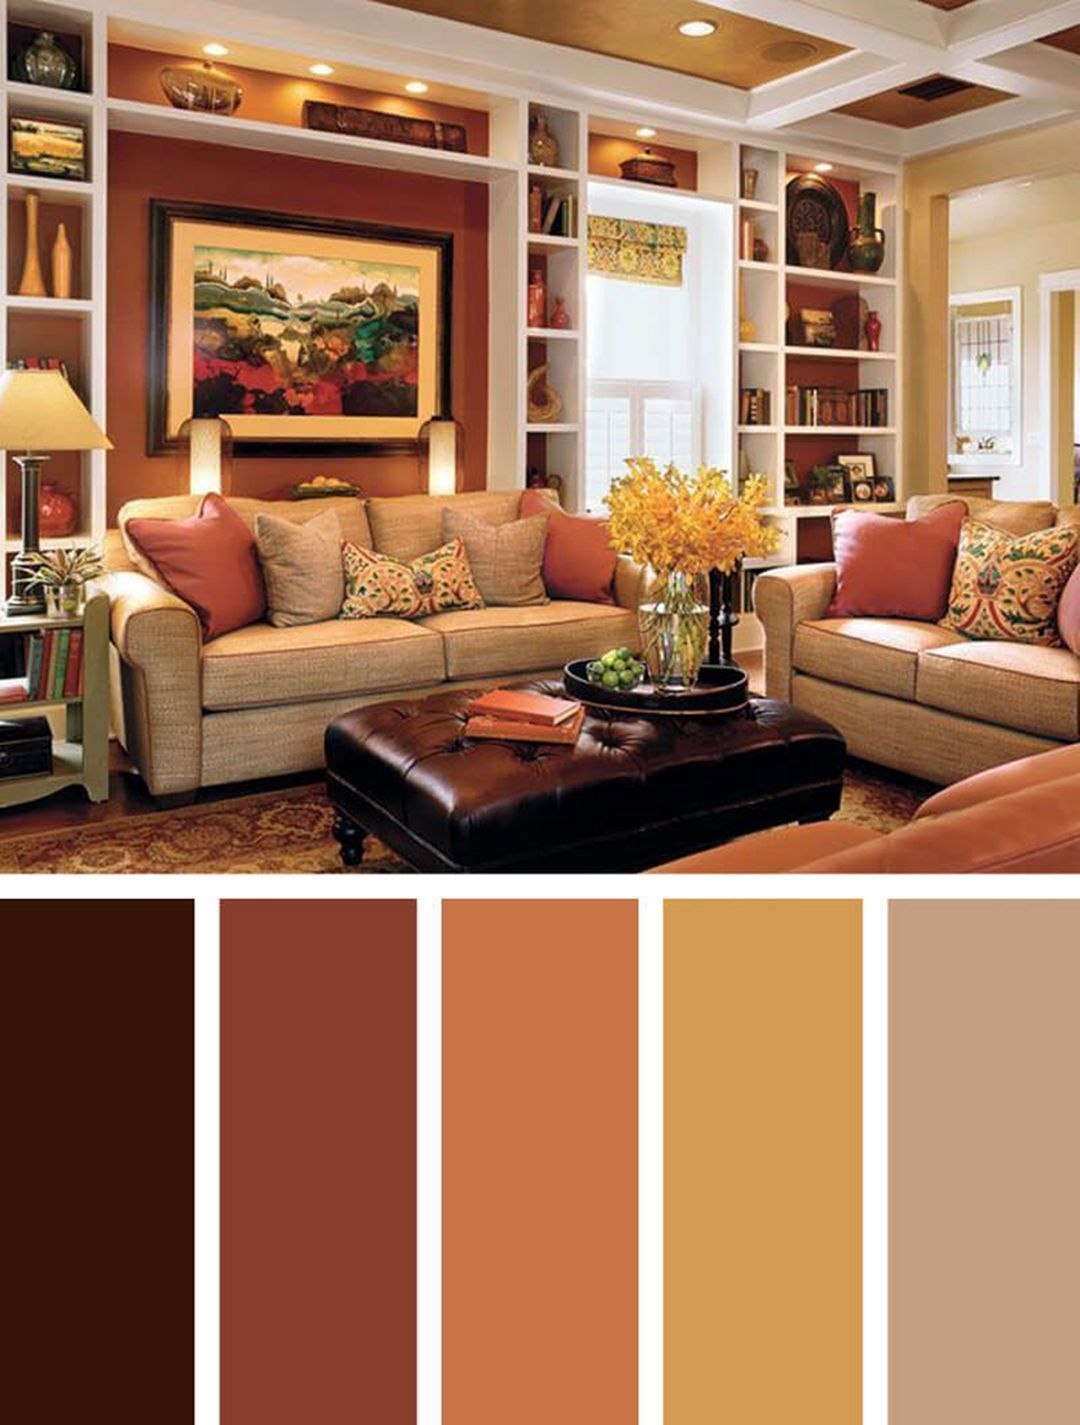 Autumn Living Room Color Scheme Ideas 2120 Brown Living Room Color Schemes Light Living Room Colors Living Room Orange